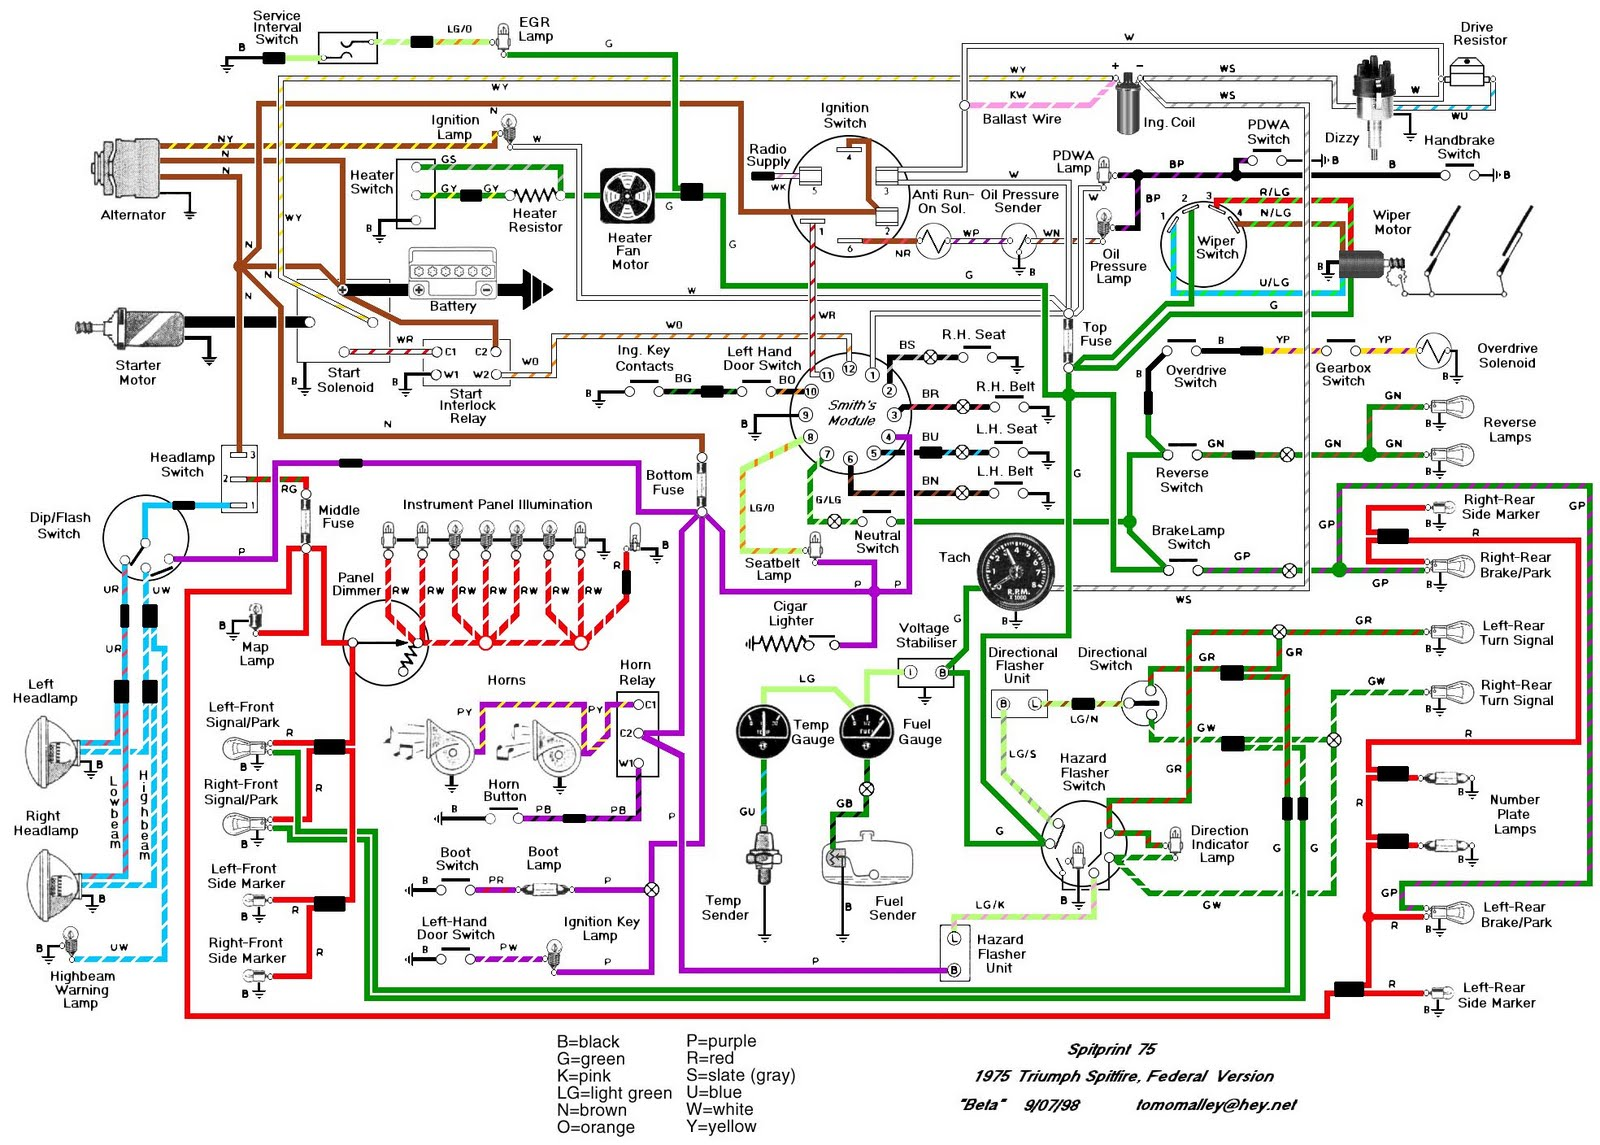 1968 Barracuda Wiring Diagram also  likewise 8pvcv Chevrolet C 1500 88 Chevy 4 3l Engine Cant furthermore 1969 Dodge Charger Wiring Harness further Electrical Wiring Schematics 1974 Charger. on 1967 plymouth barracuda dash wiring diagram